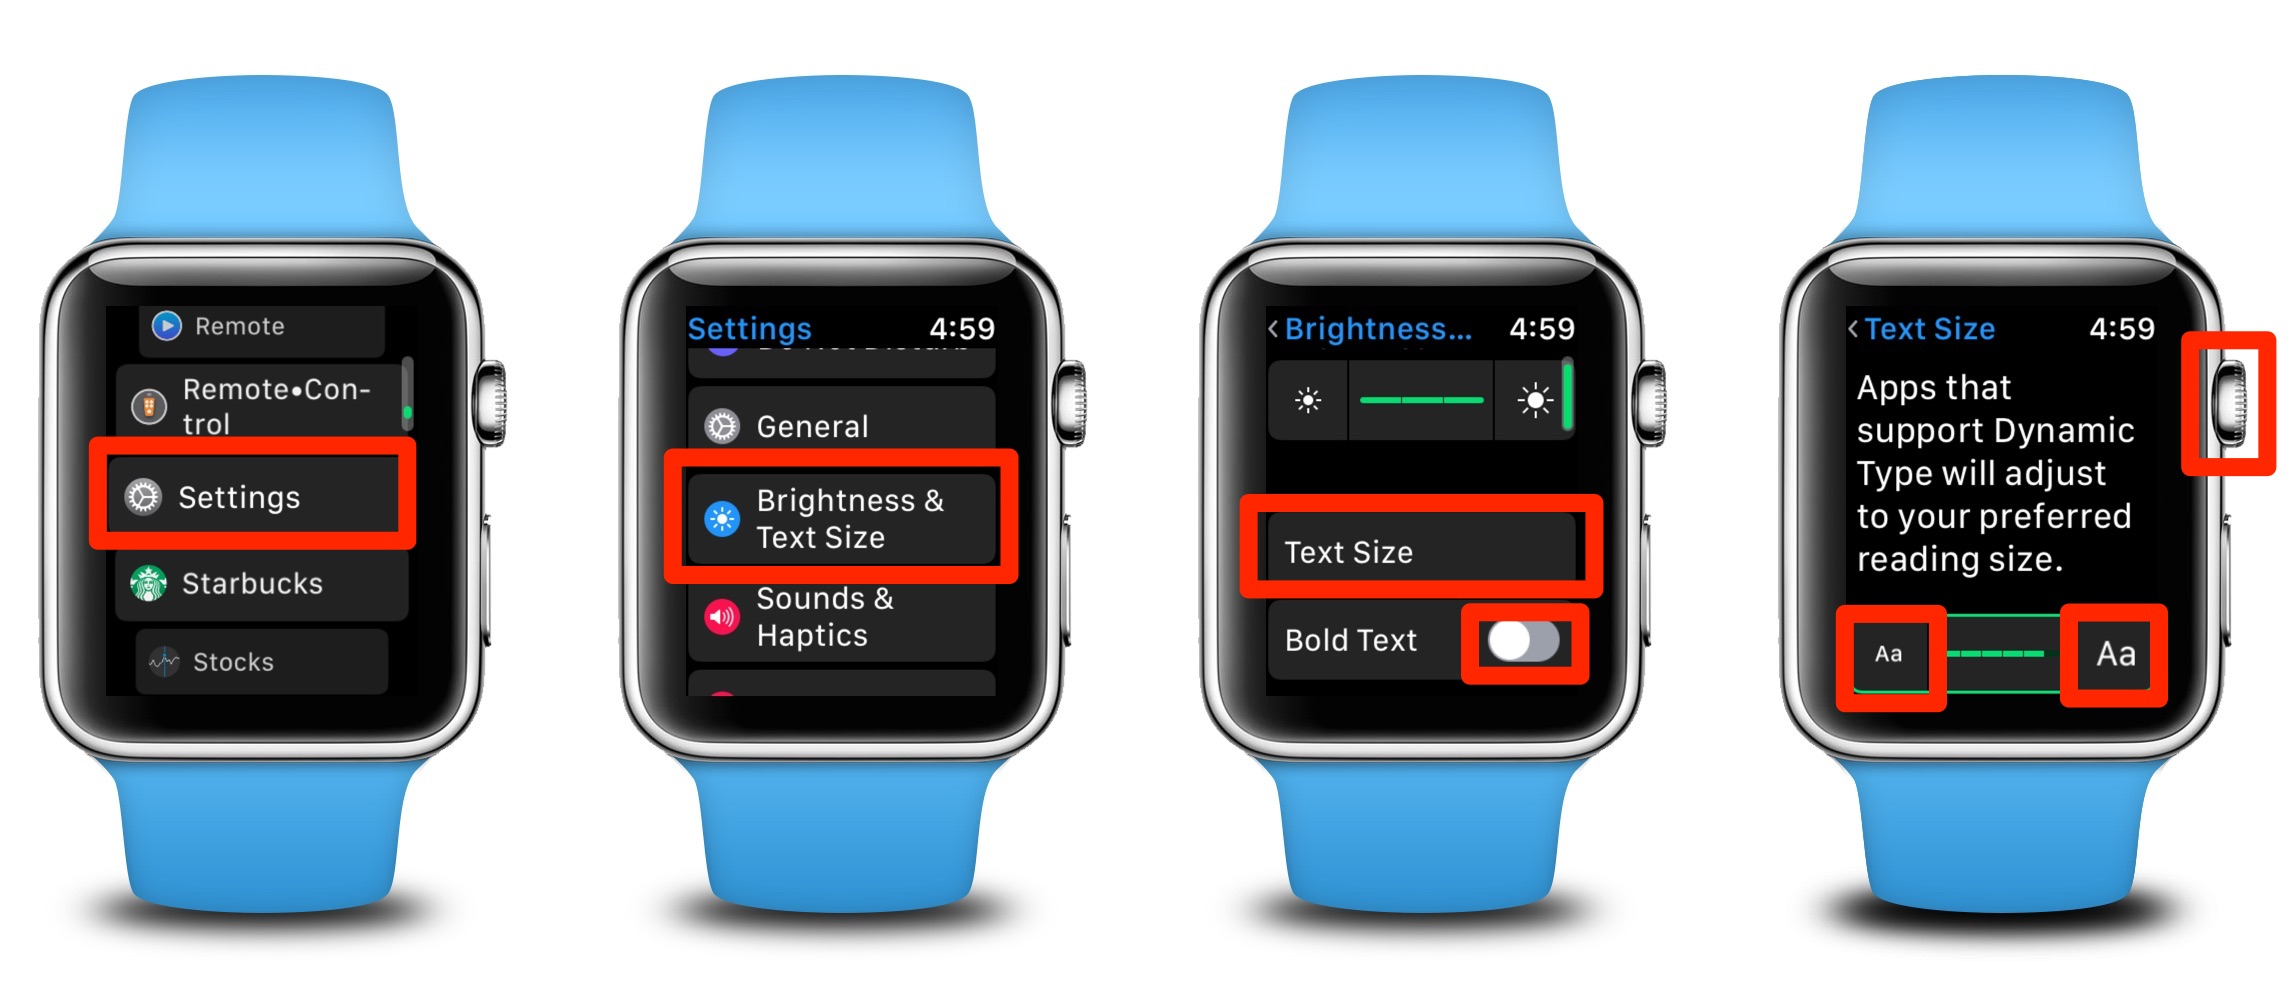 How to Adjust Text Size and Enable Bold Text on Your Apple Watch